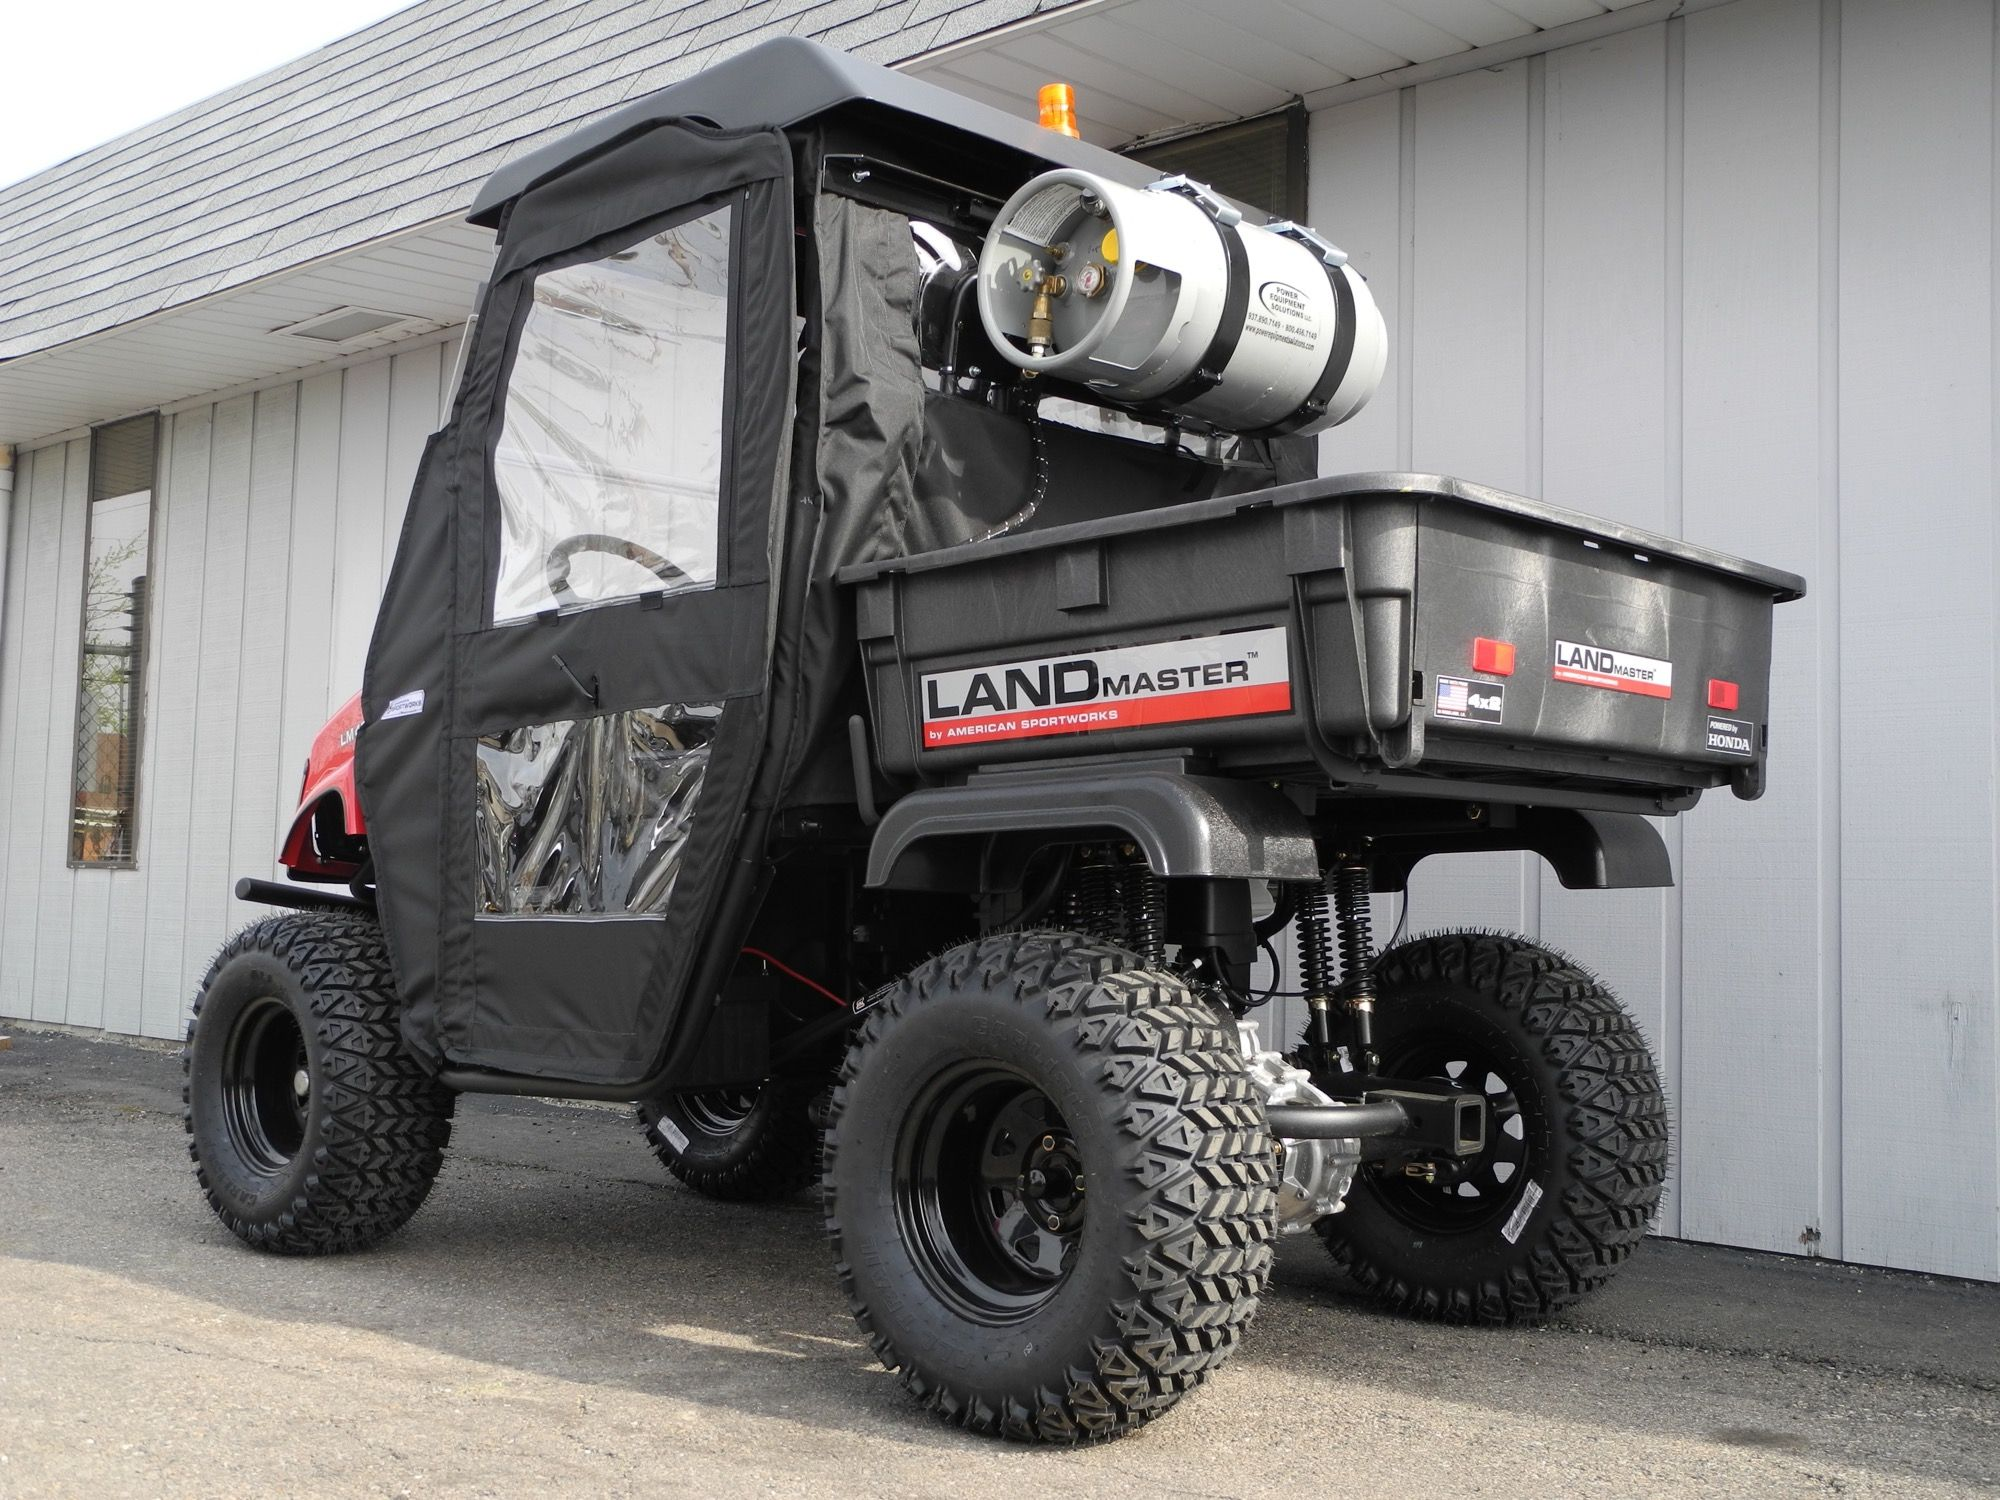 The second of two American SportWorks Landmaster LM400 side